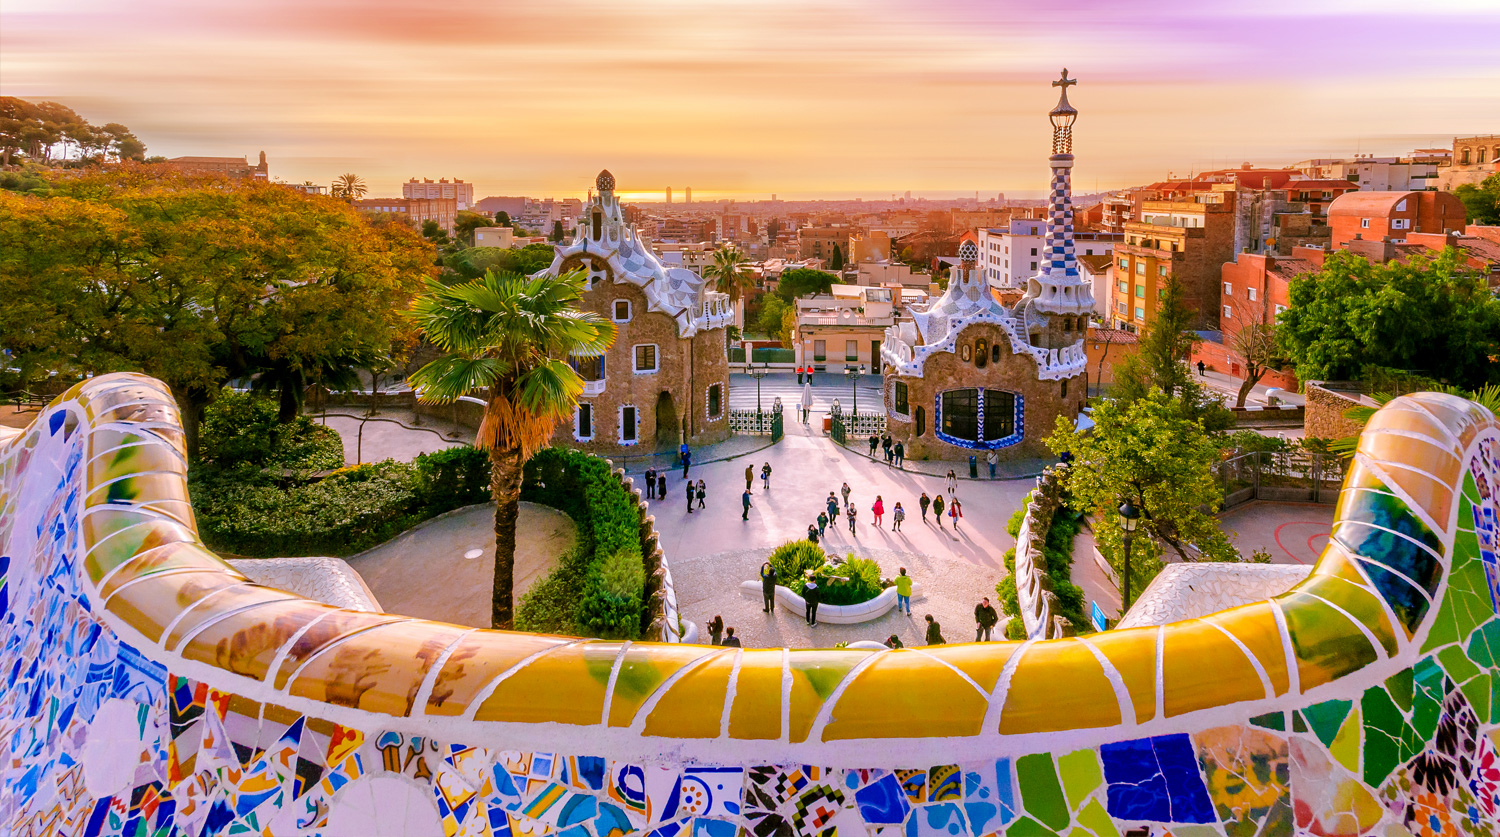 Barcelona's colorful tile buildings at sunset